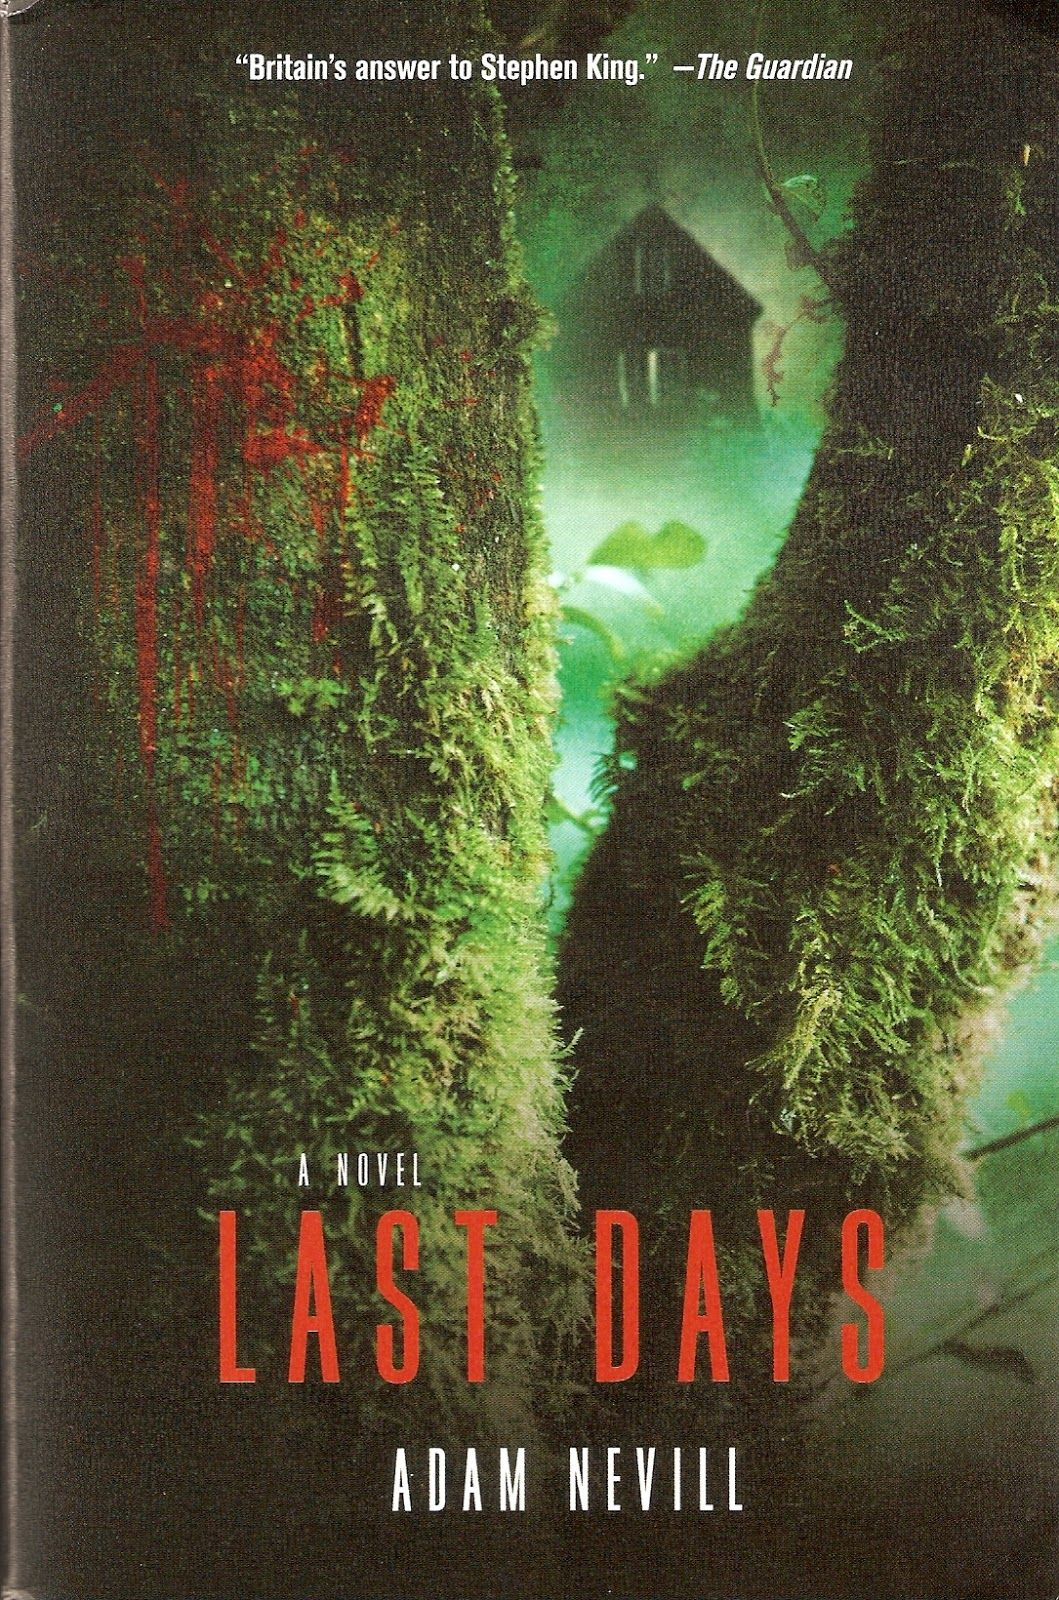 last days by adam nevill holy hell this book was creepy i 39 m pretty hardened but this had me